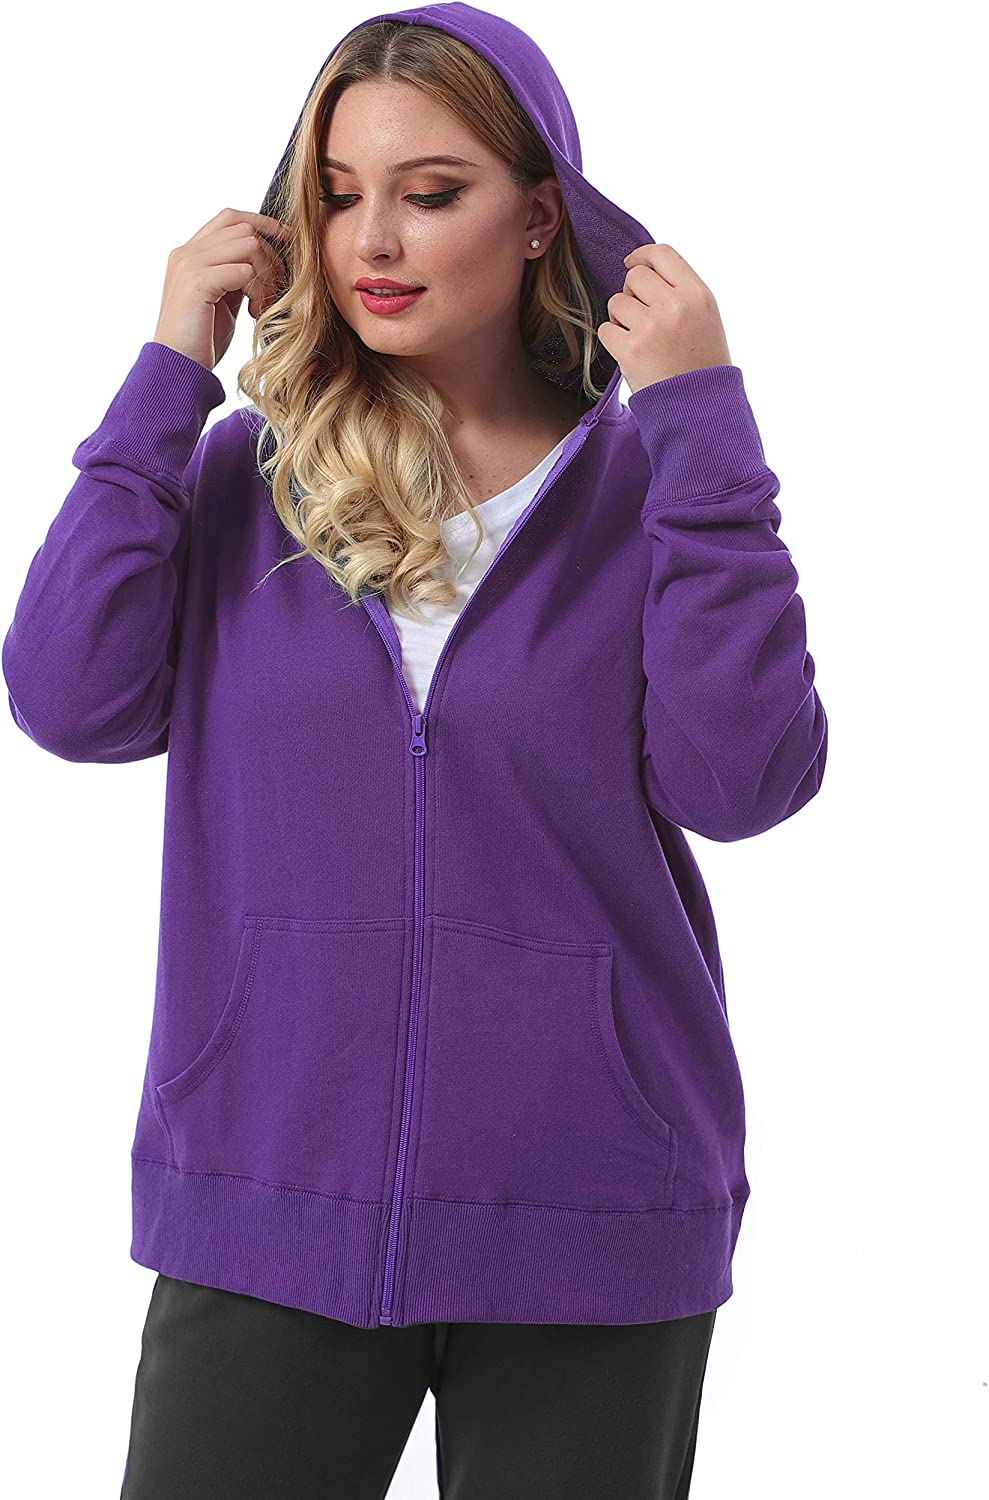 ZERDOCEAN Womens Plus Size Full Zip-Up Hoodie Jacket Cotton Sweatshirt